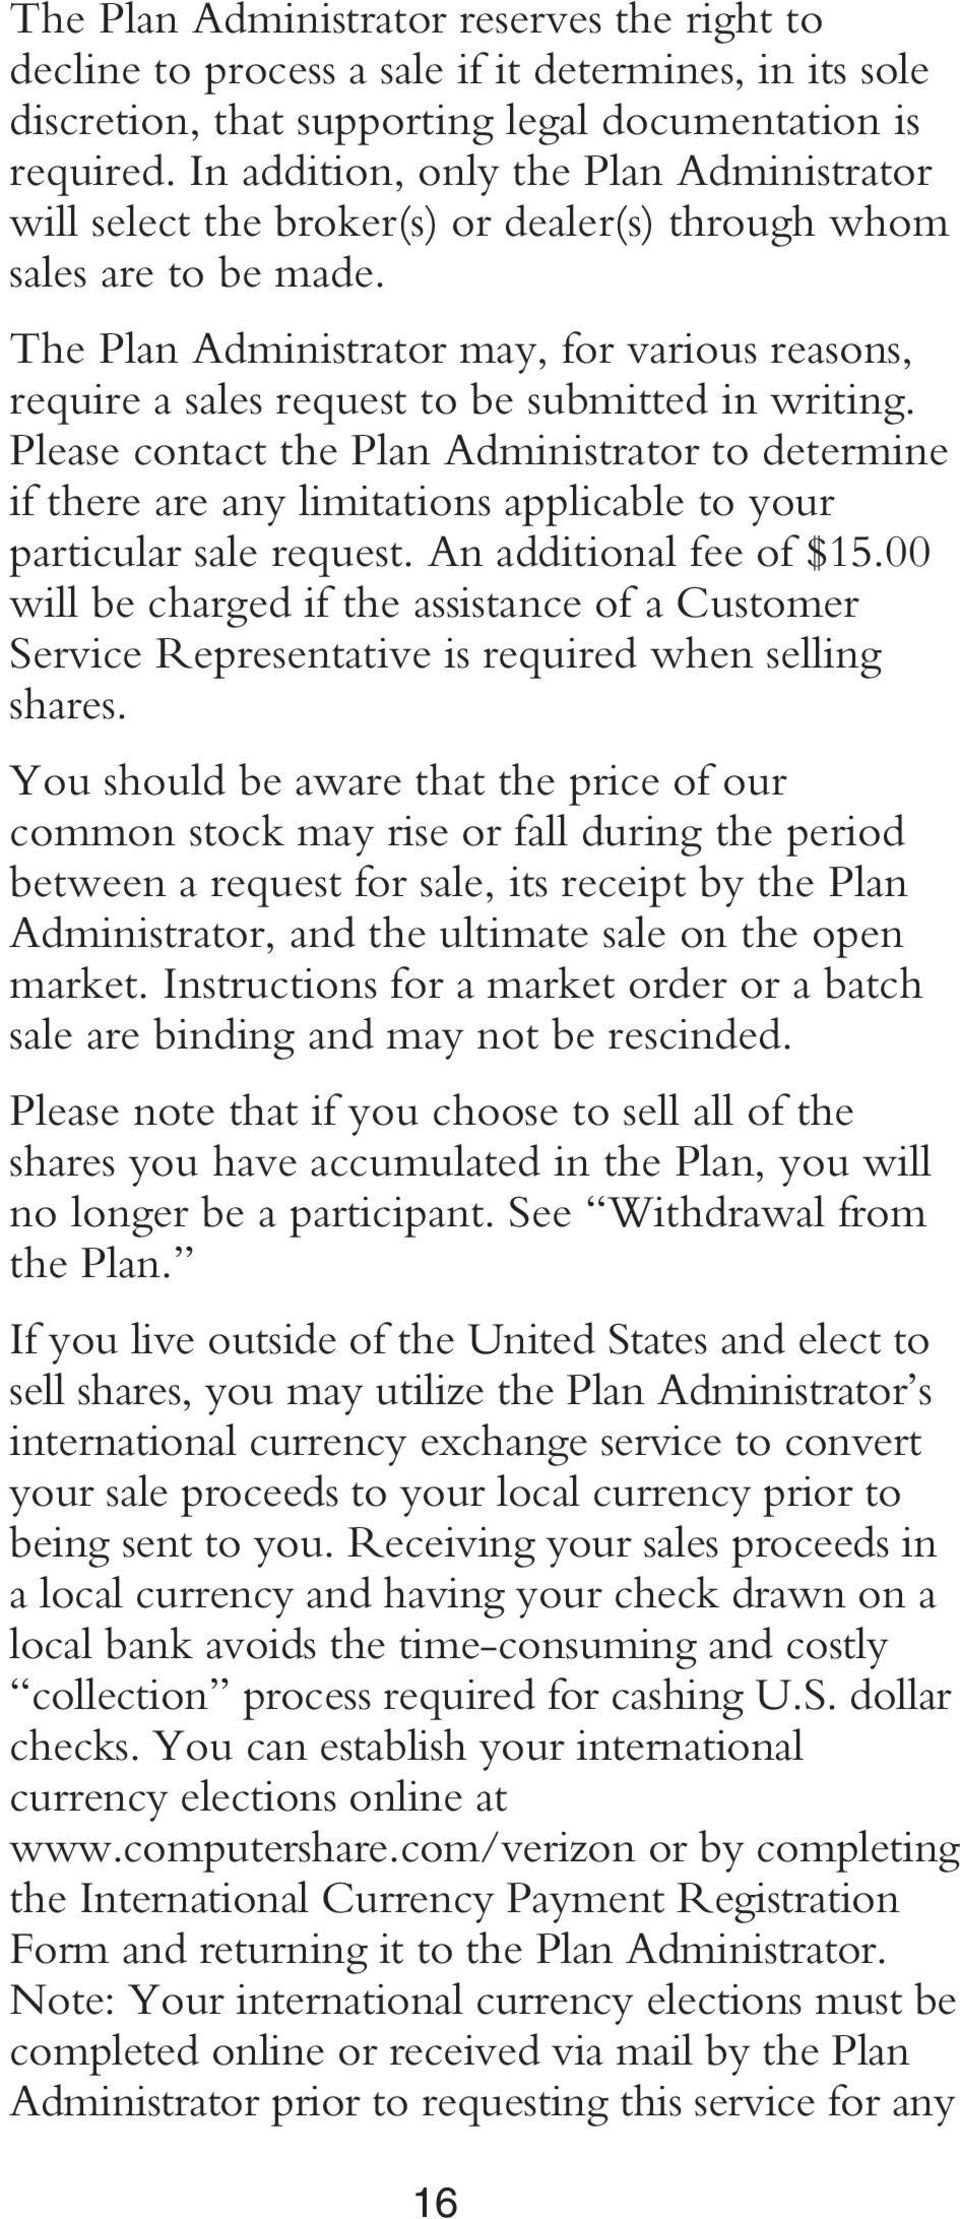 The Plan Administrator may, for various reasons, require a sales request to be submitted in writing.